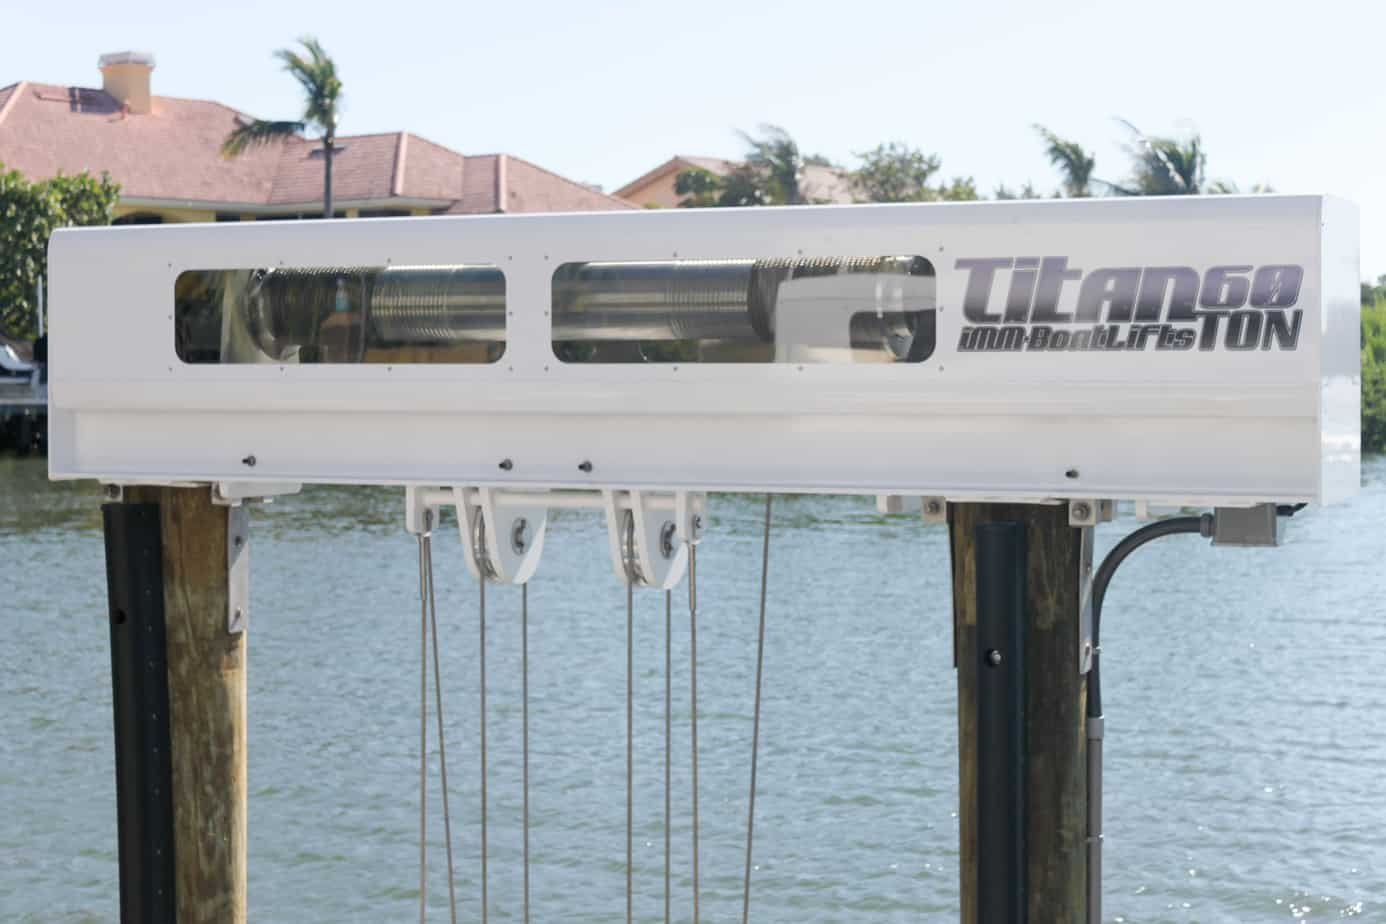 4 Things to Look for When Buying a Used Boat - image patented-technology-Titan-Beam on https://www.iqboatlifts.com